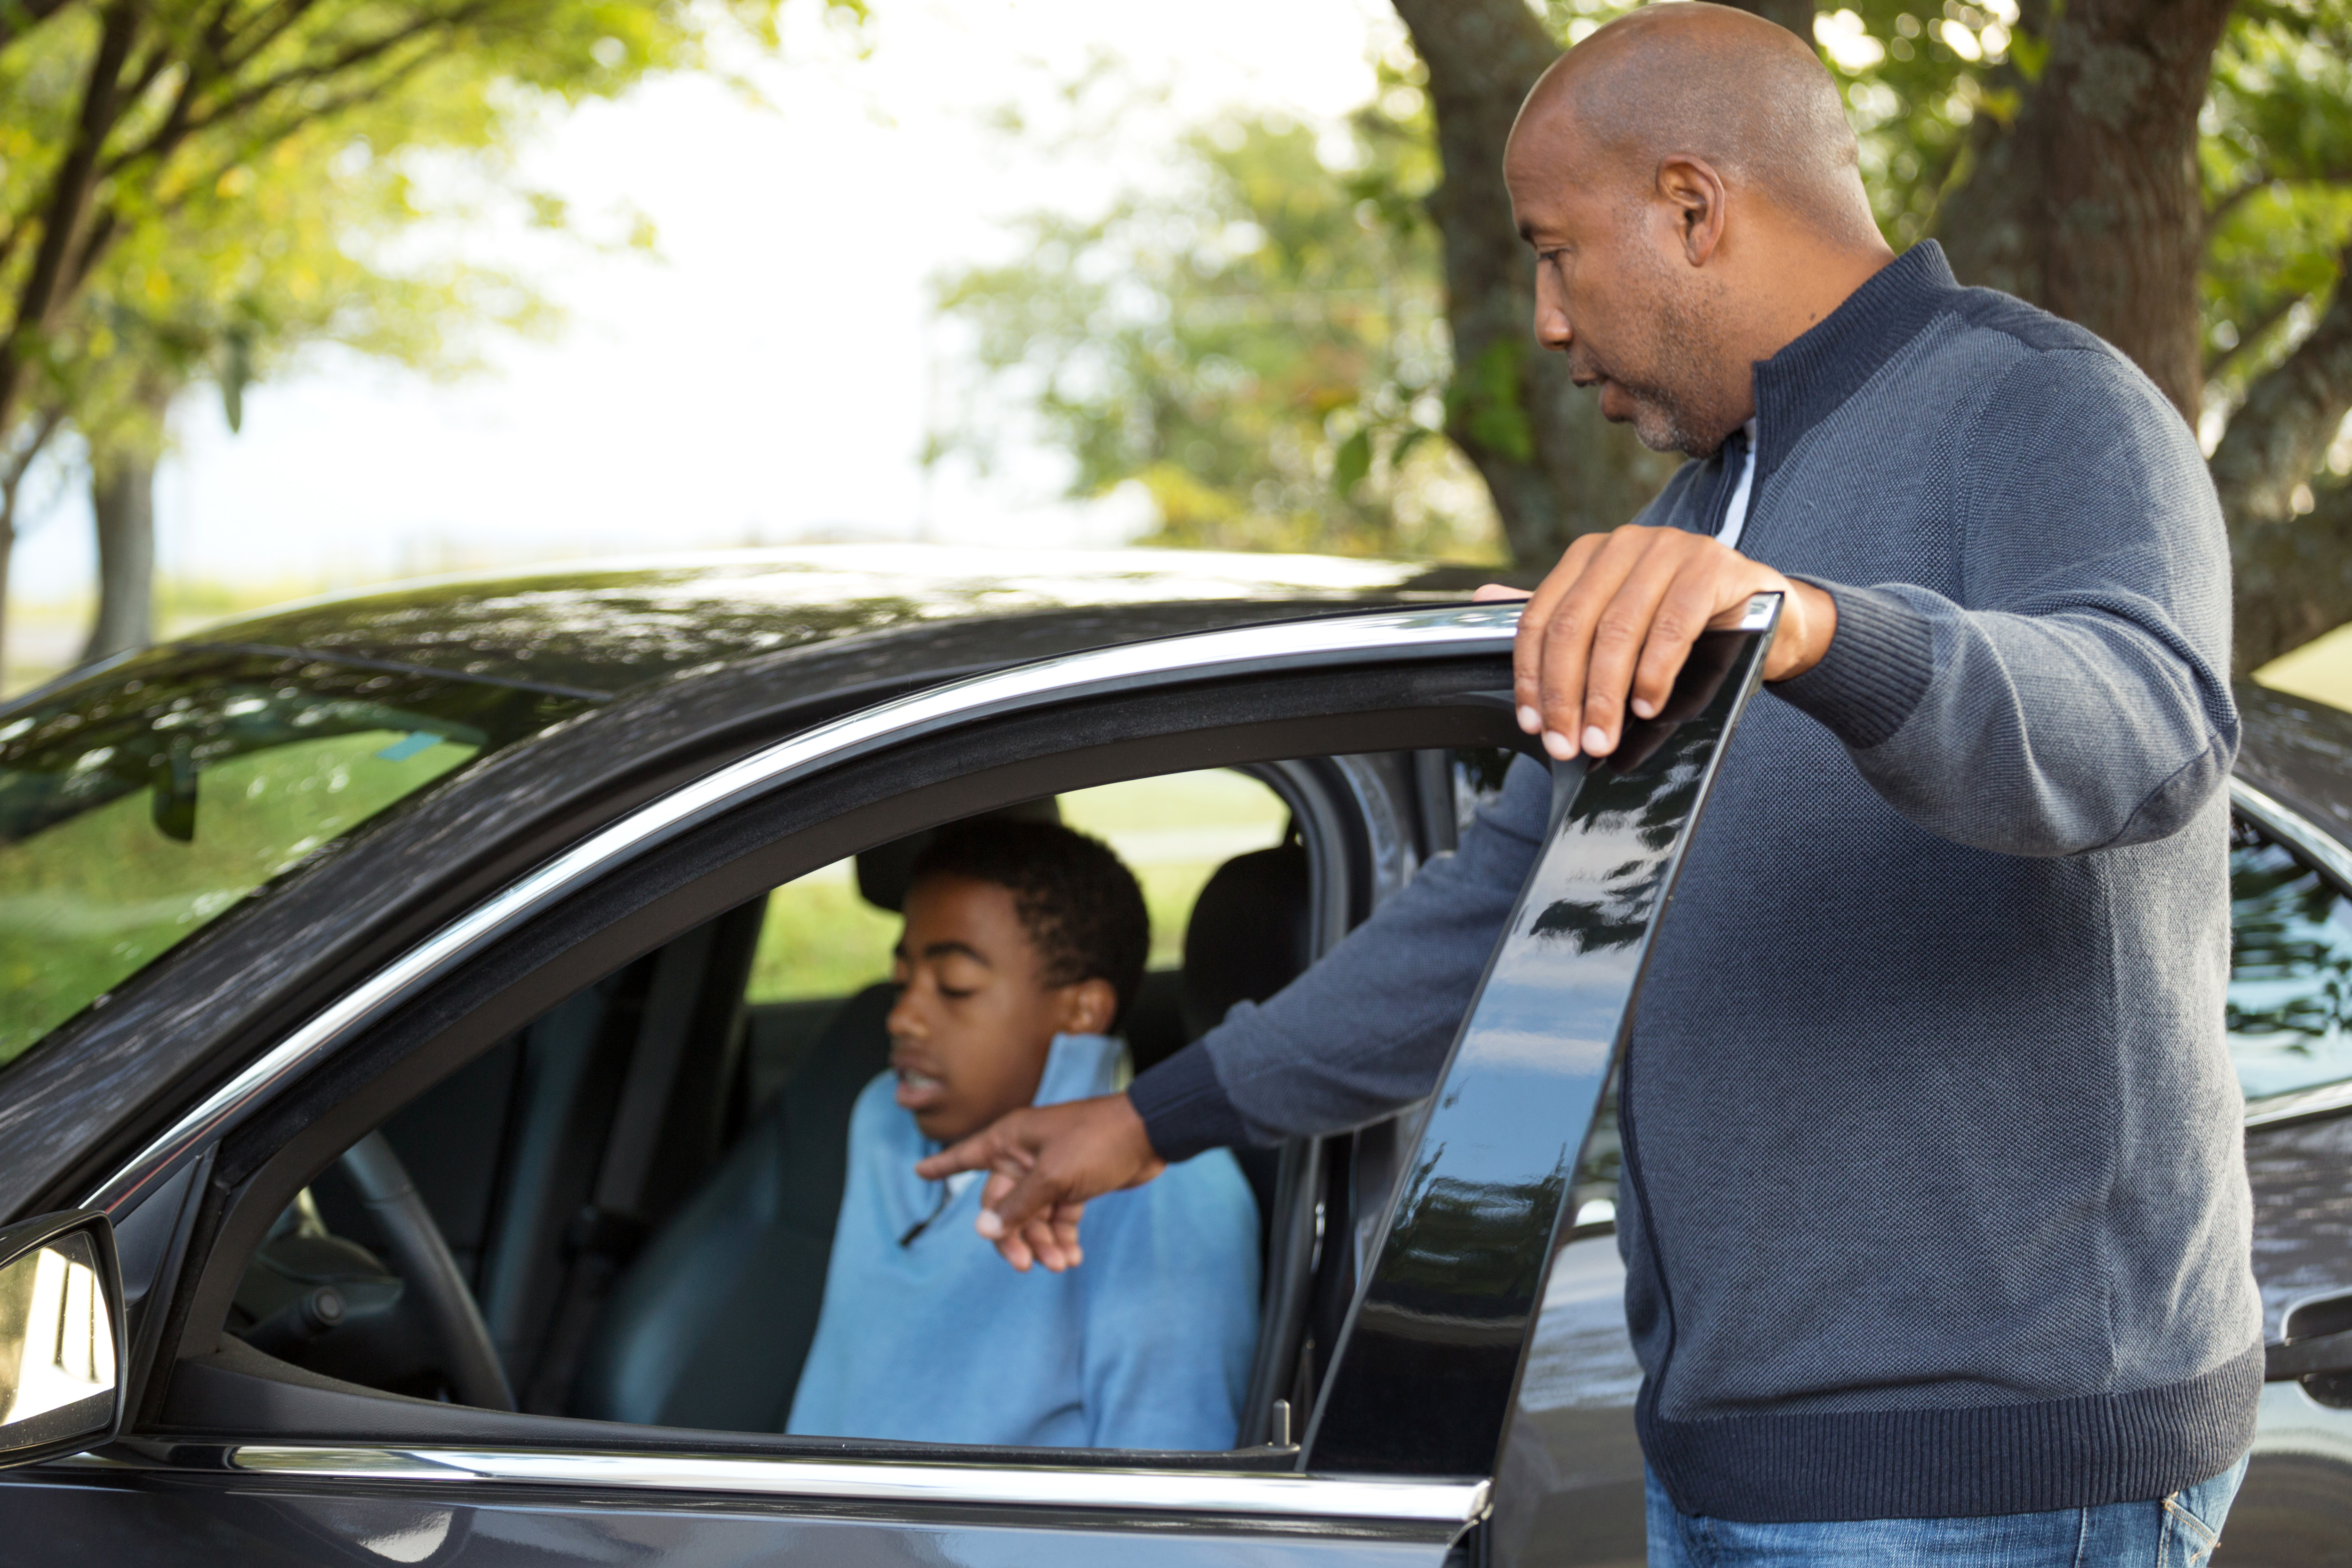 Male instructing teen driver